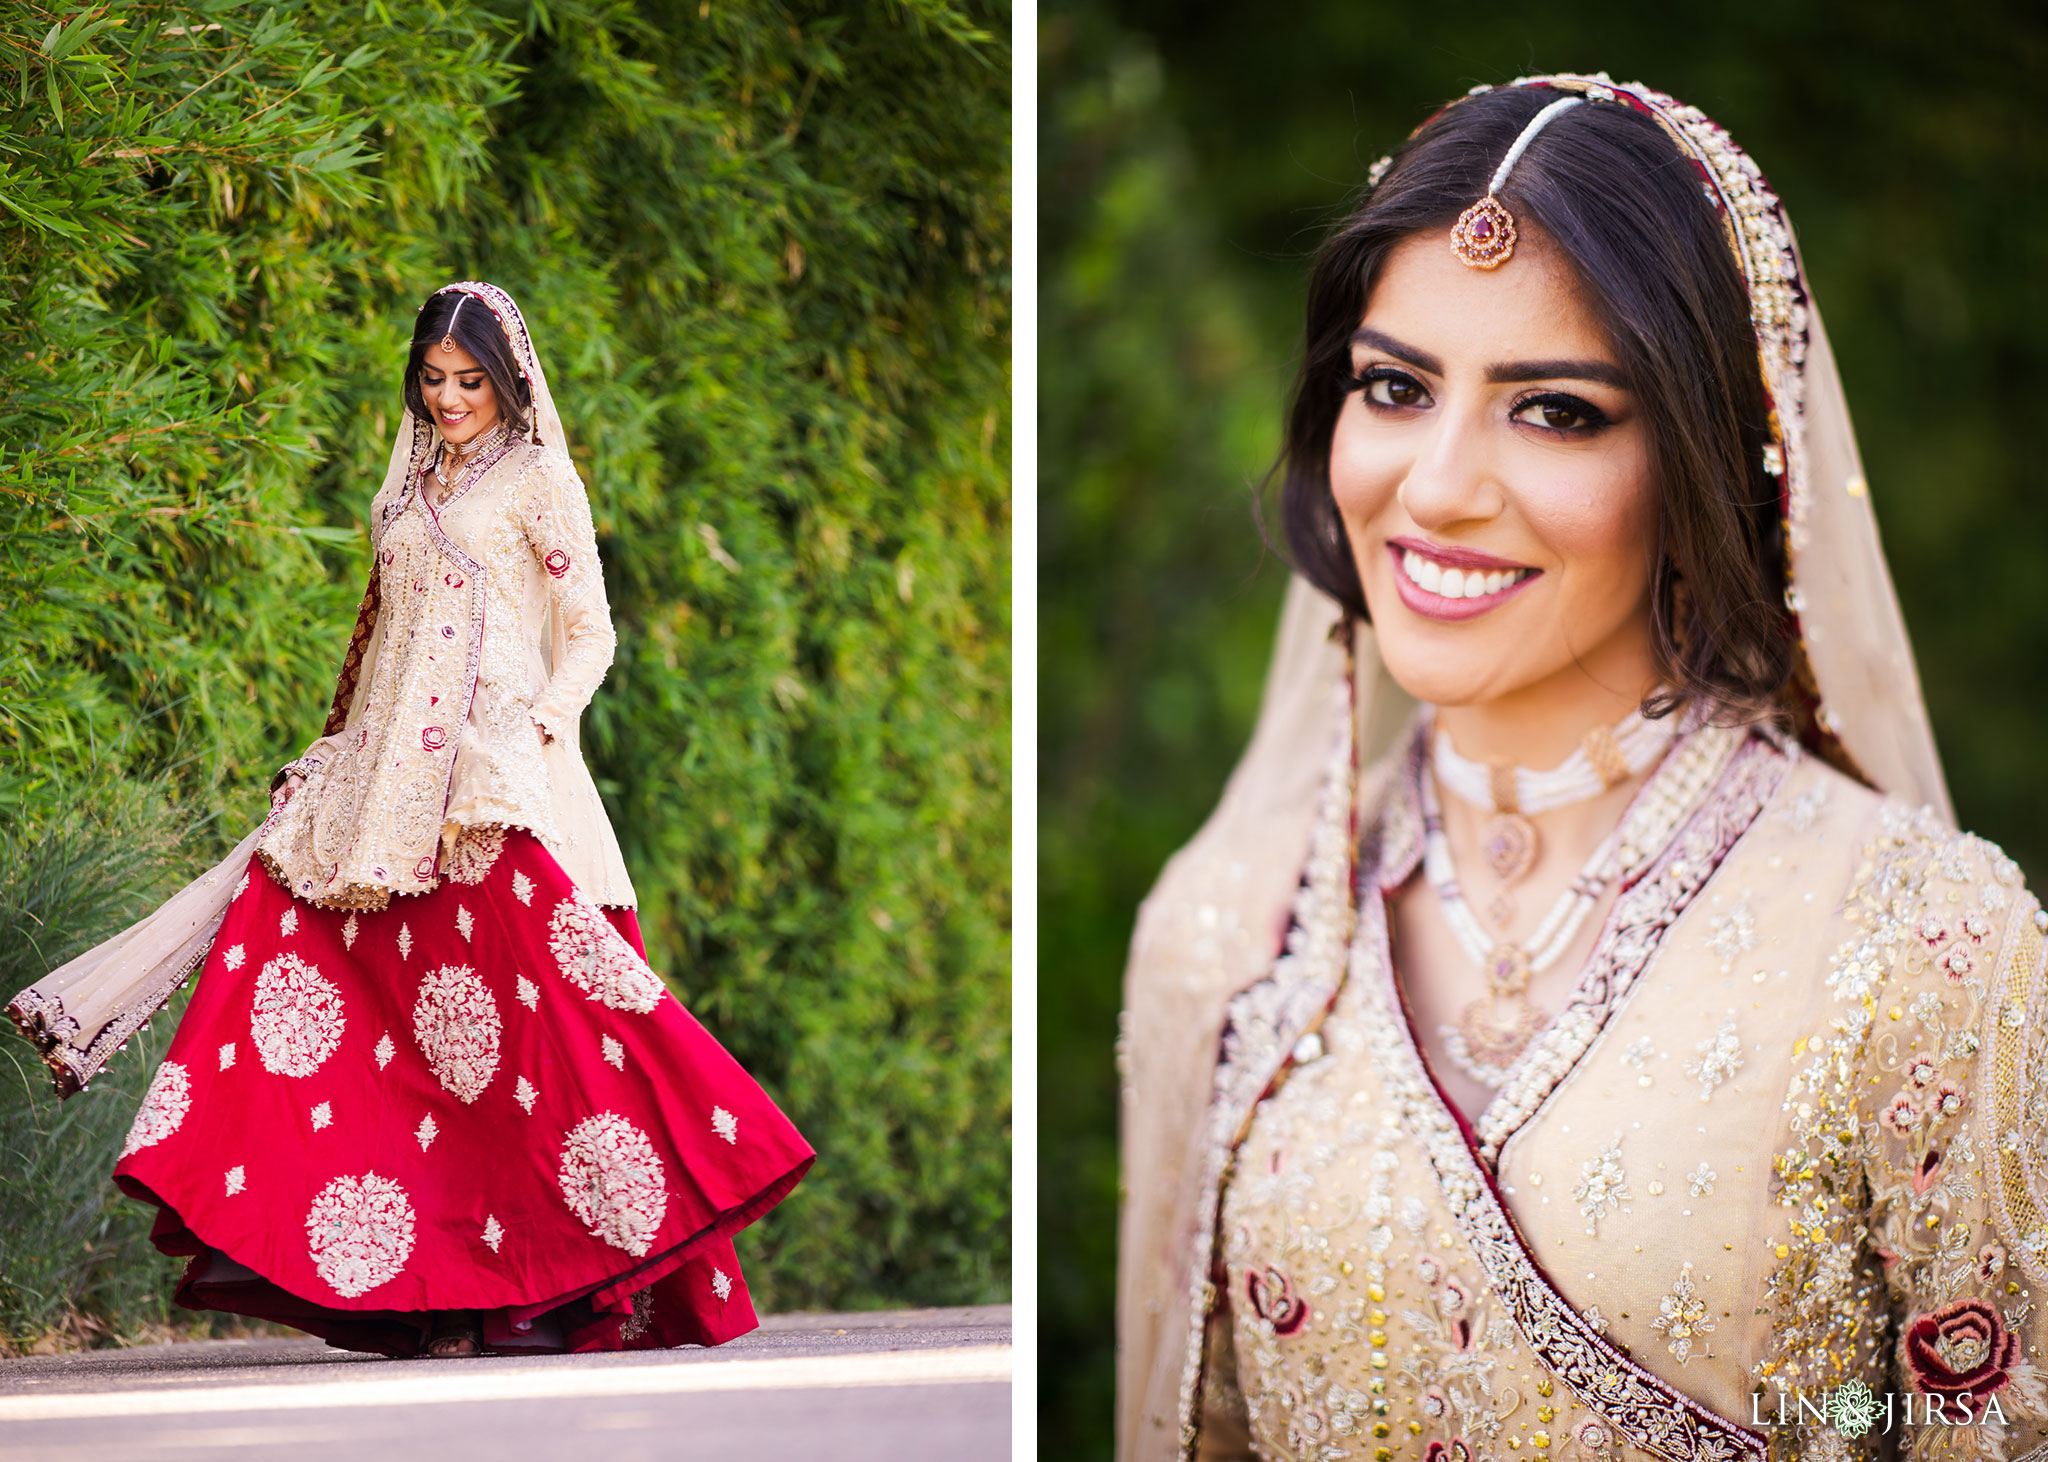 007 four seasons westlake village south asian wedding photography